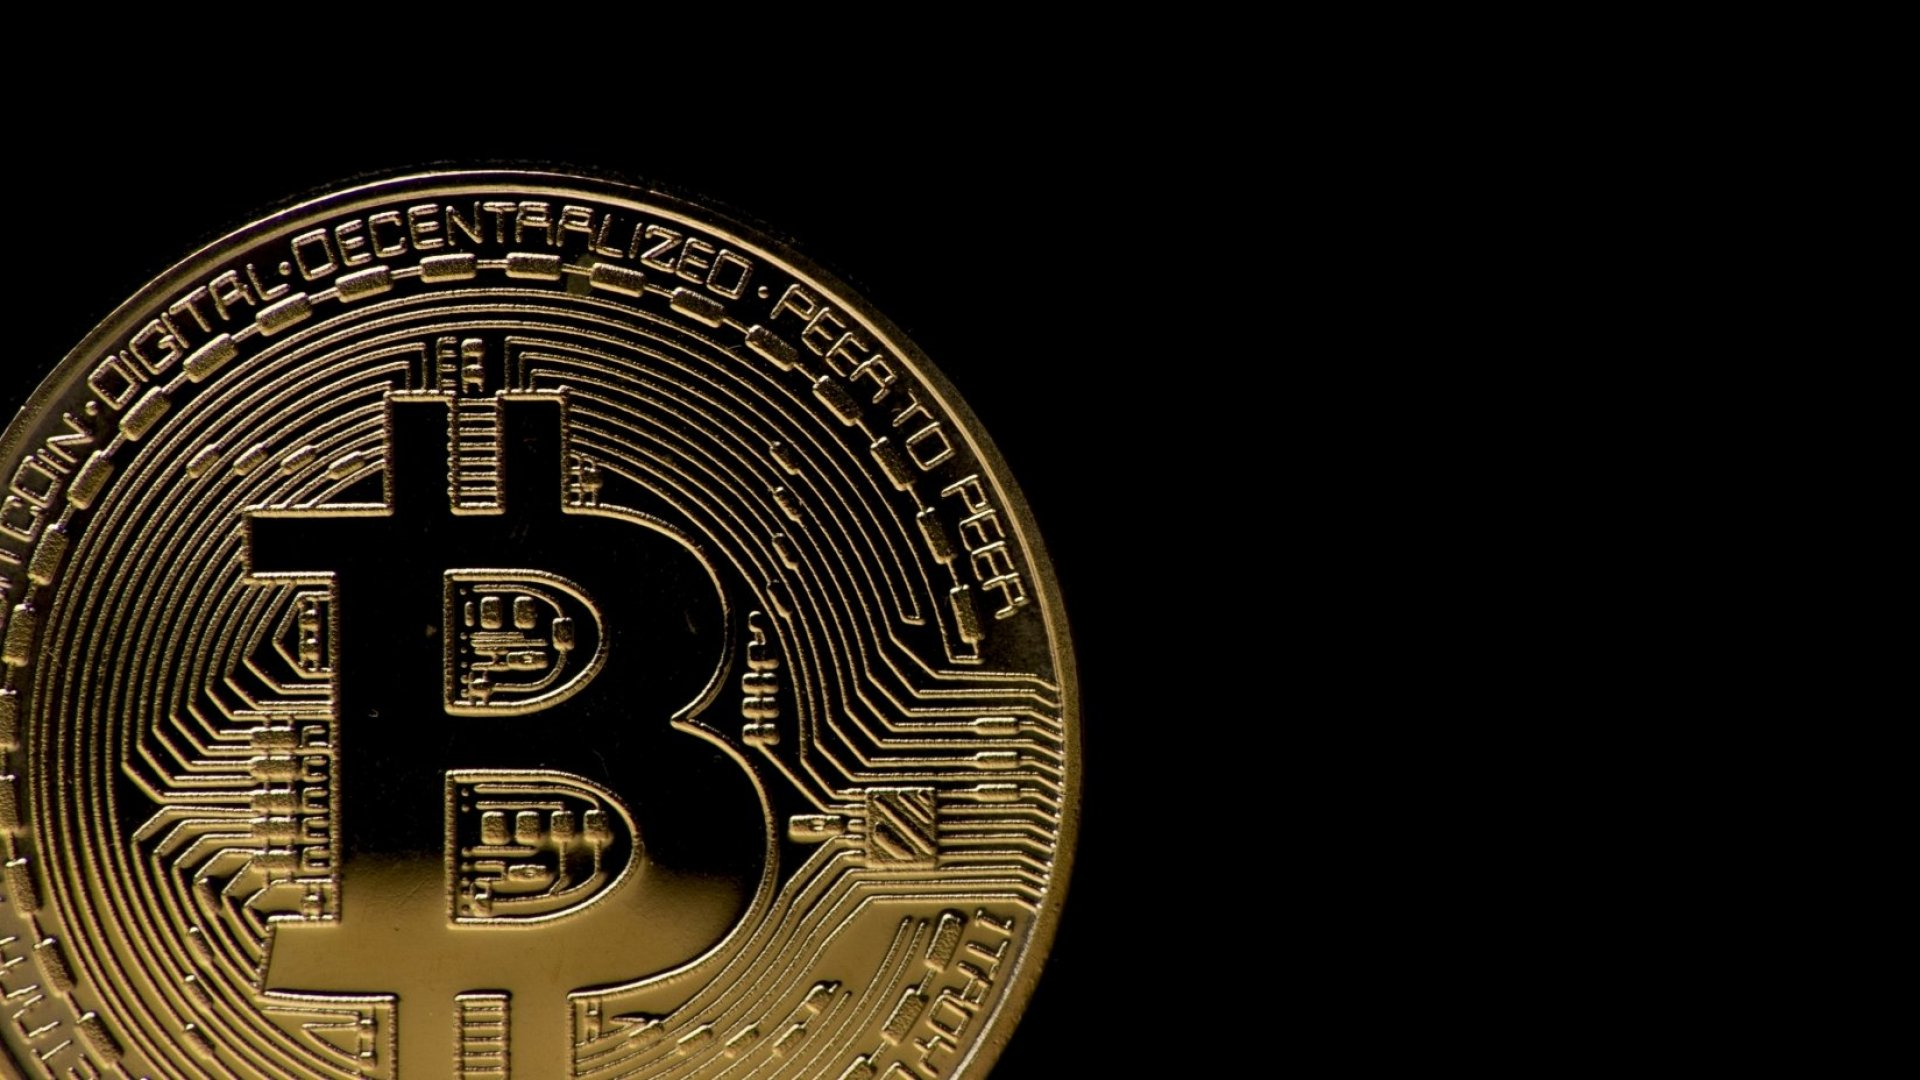 Did You Buy or Sell Bitcoin in the Last Year? You May Owe Taxes to the IRS